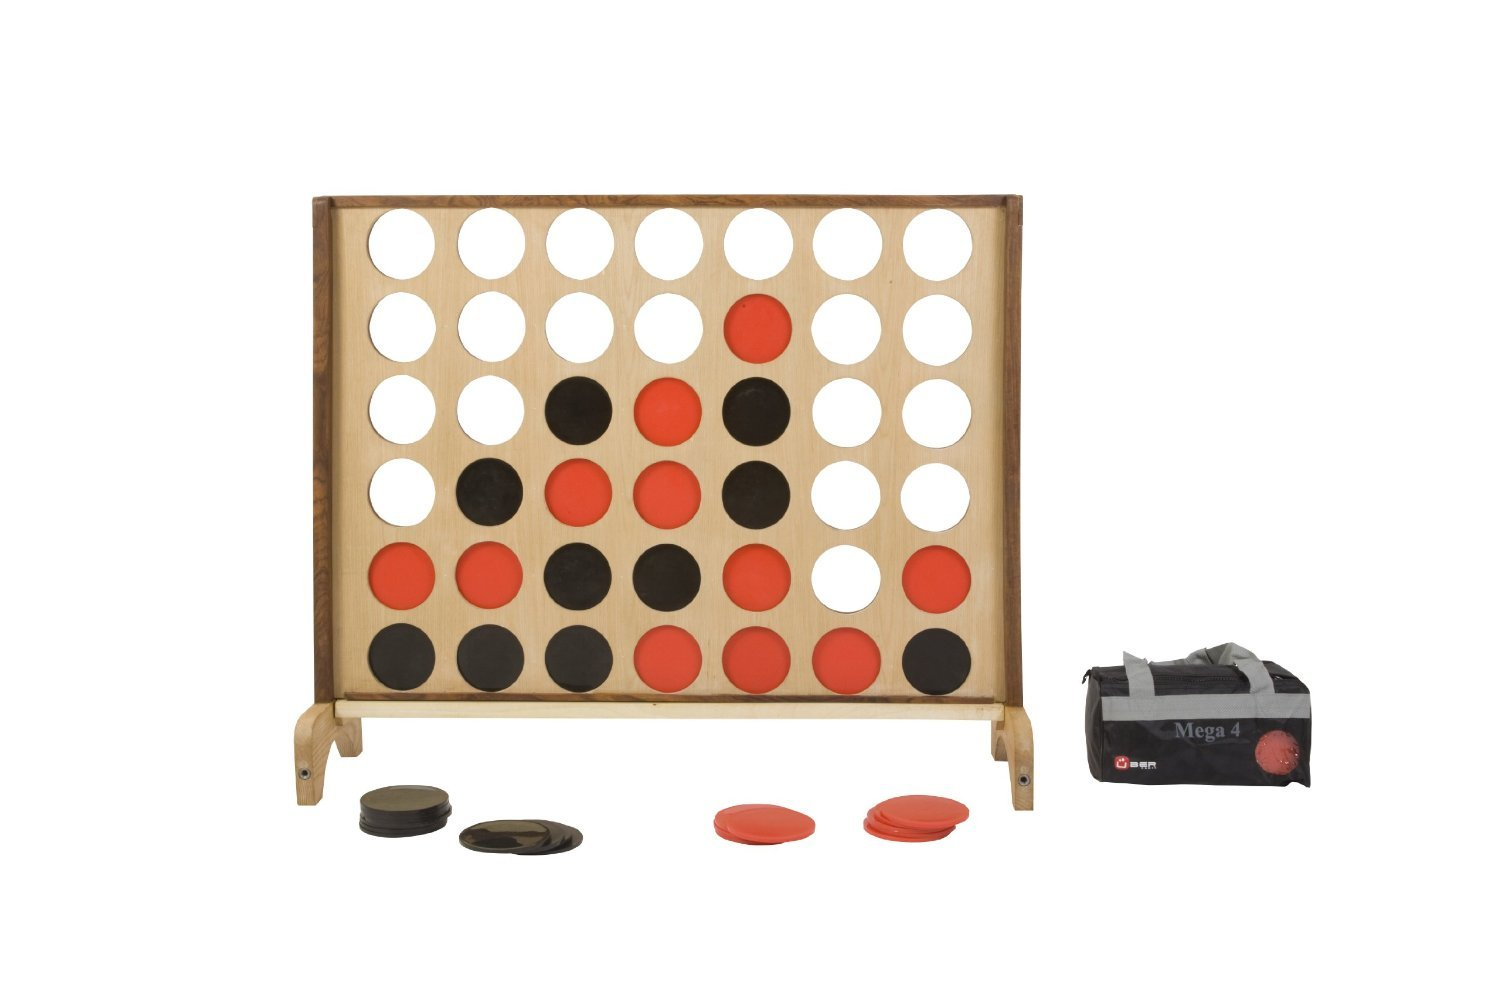 Uber Games Mega 4 in a Row - 4 feet wide x 3.5 feet tall - 5 inch coins red and black by Uber Games